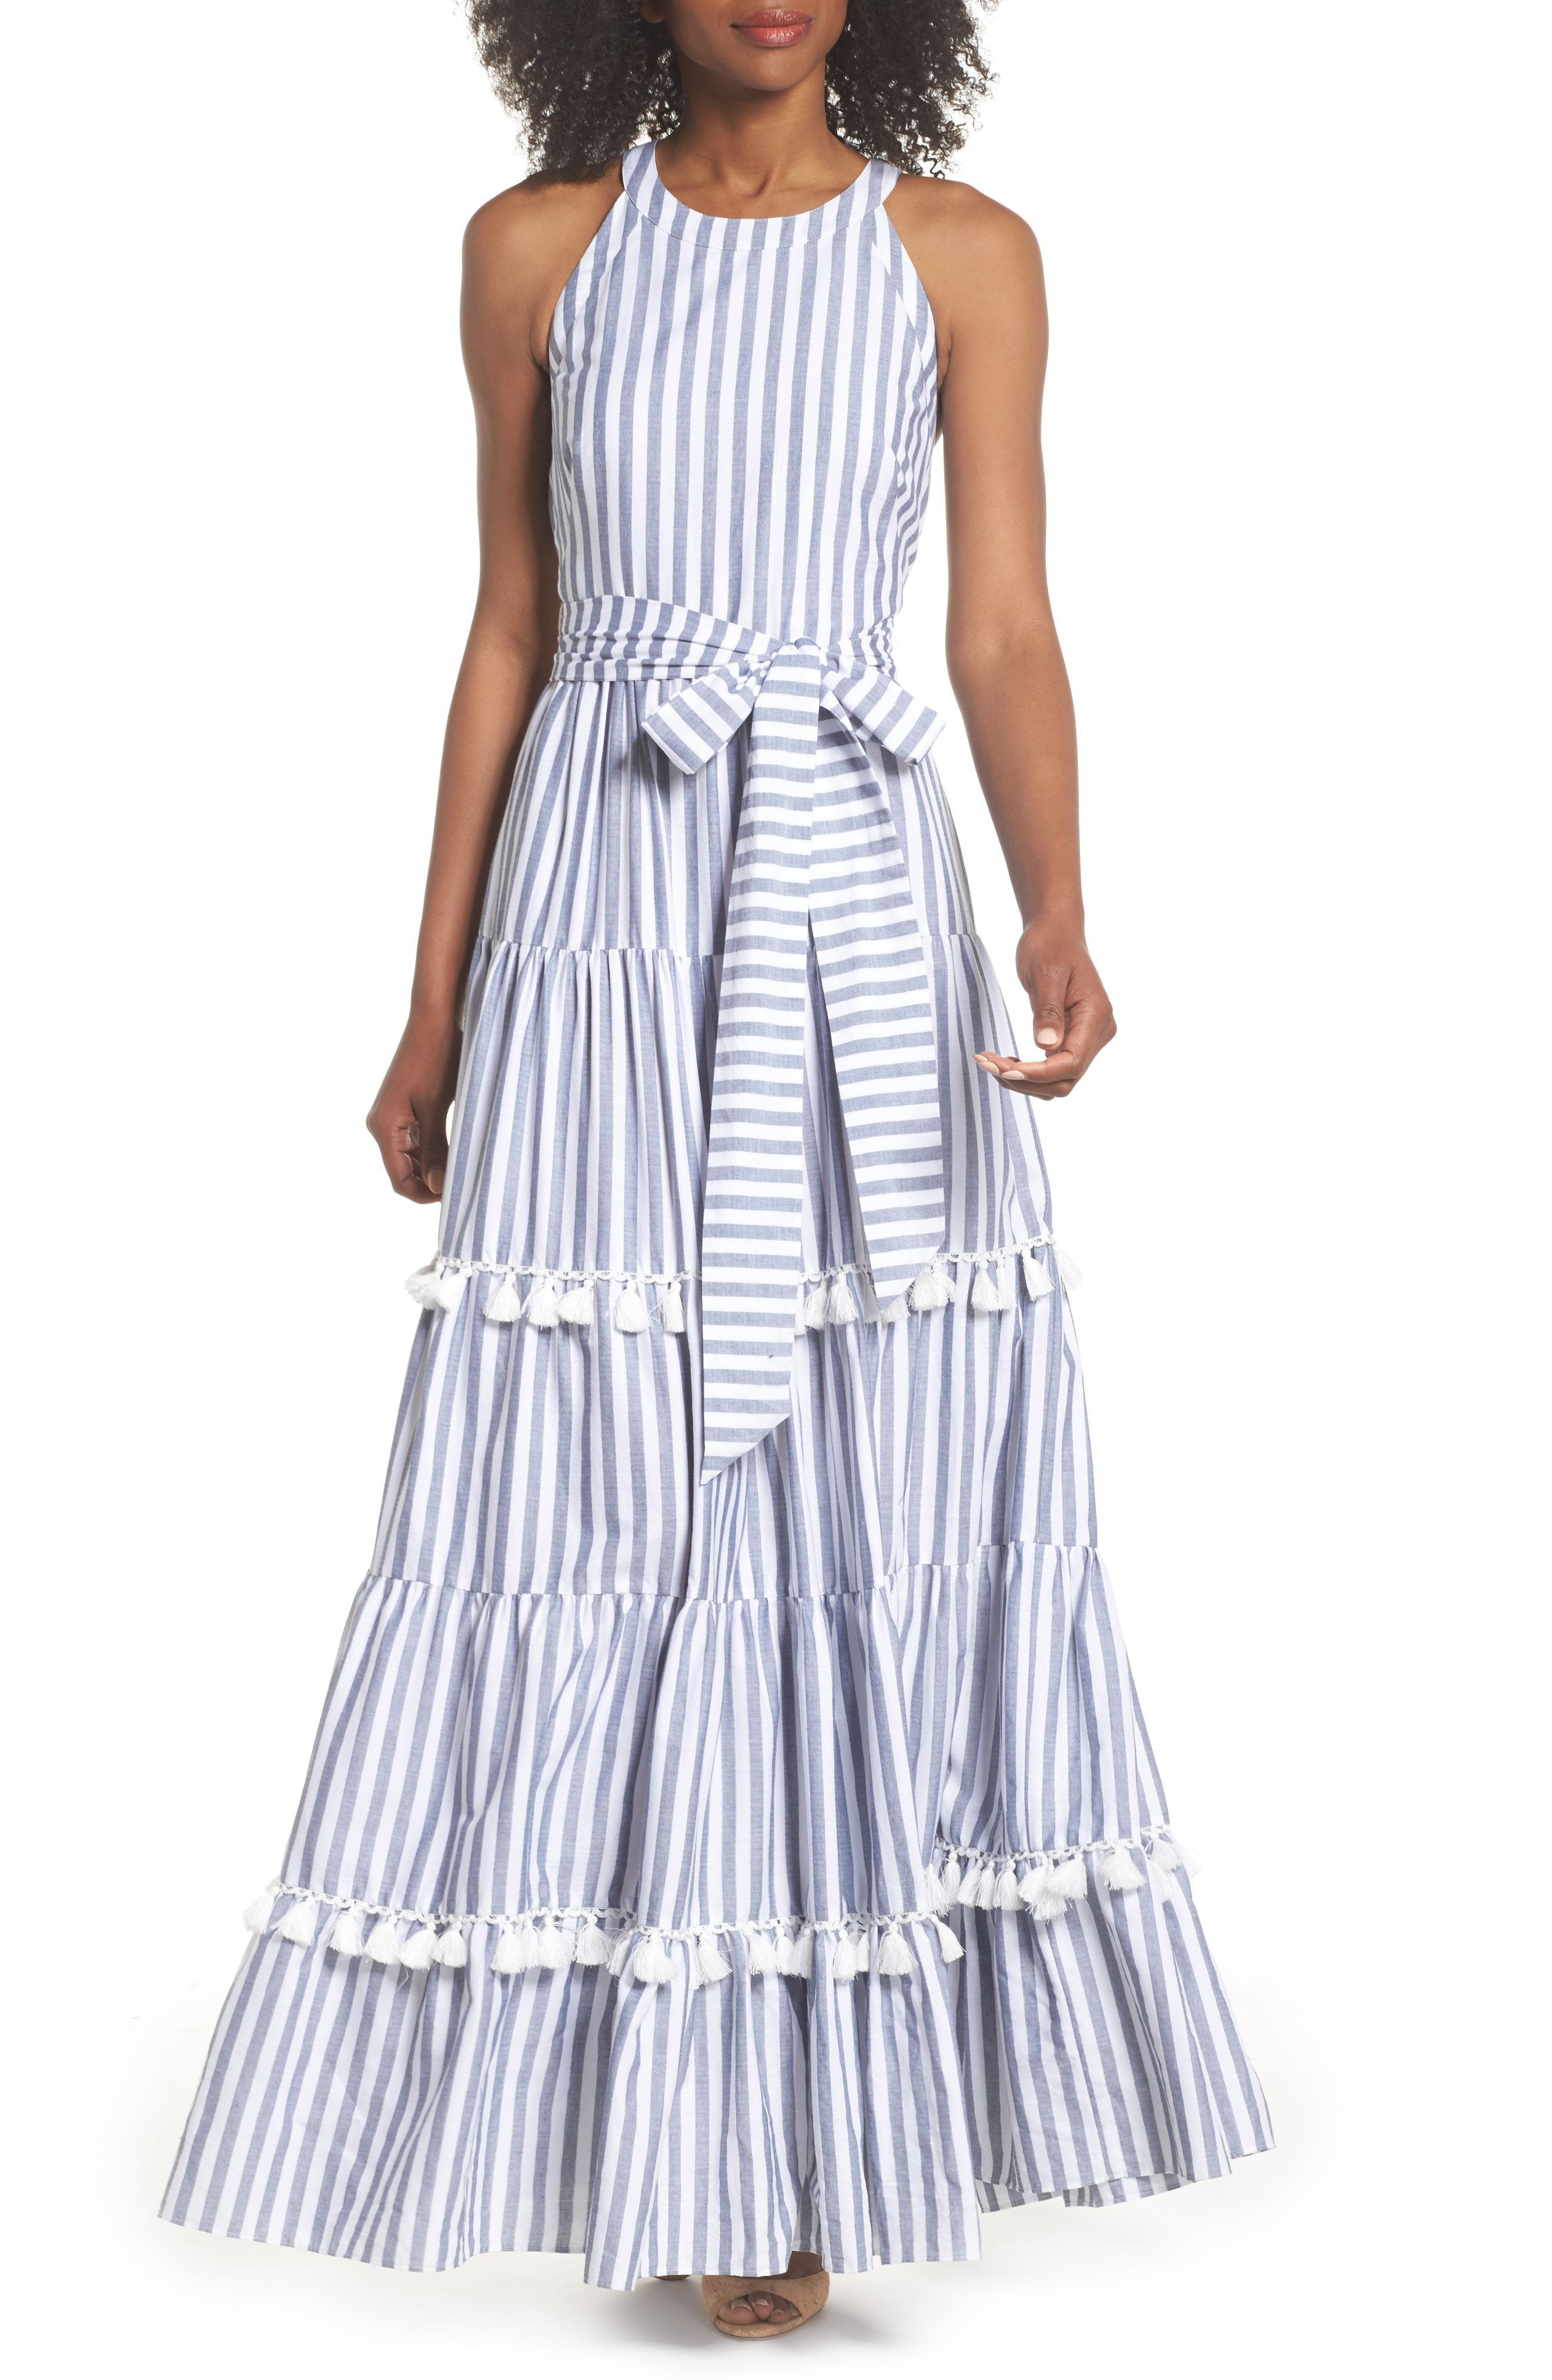 Late July Dresses for Outdoor Wedding